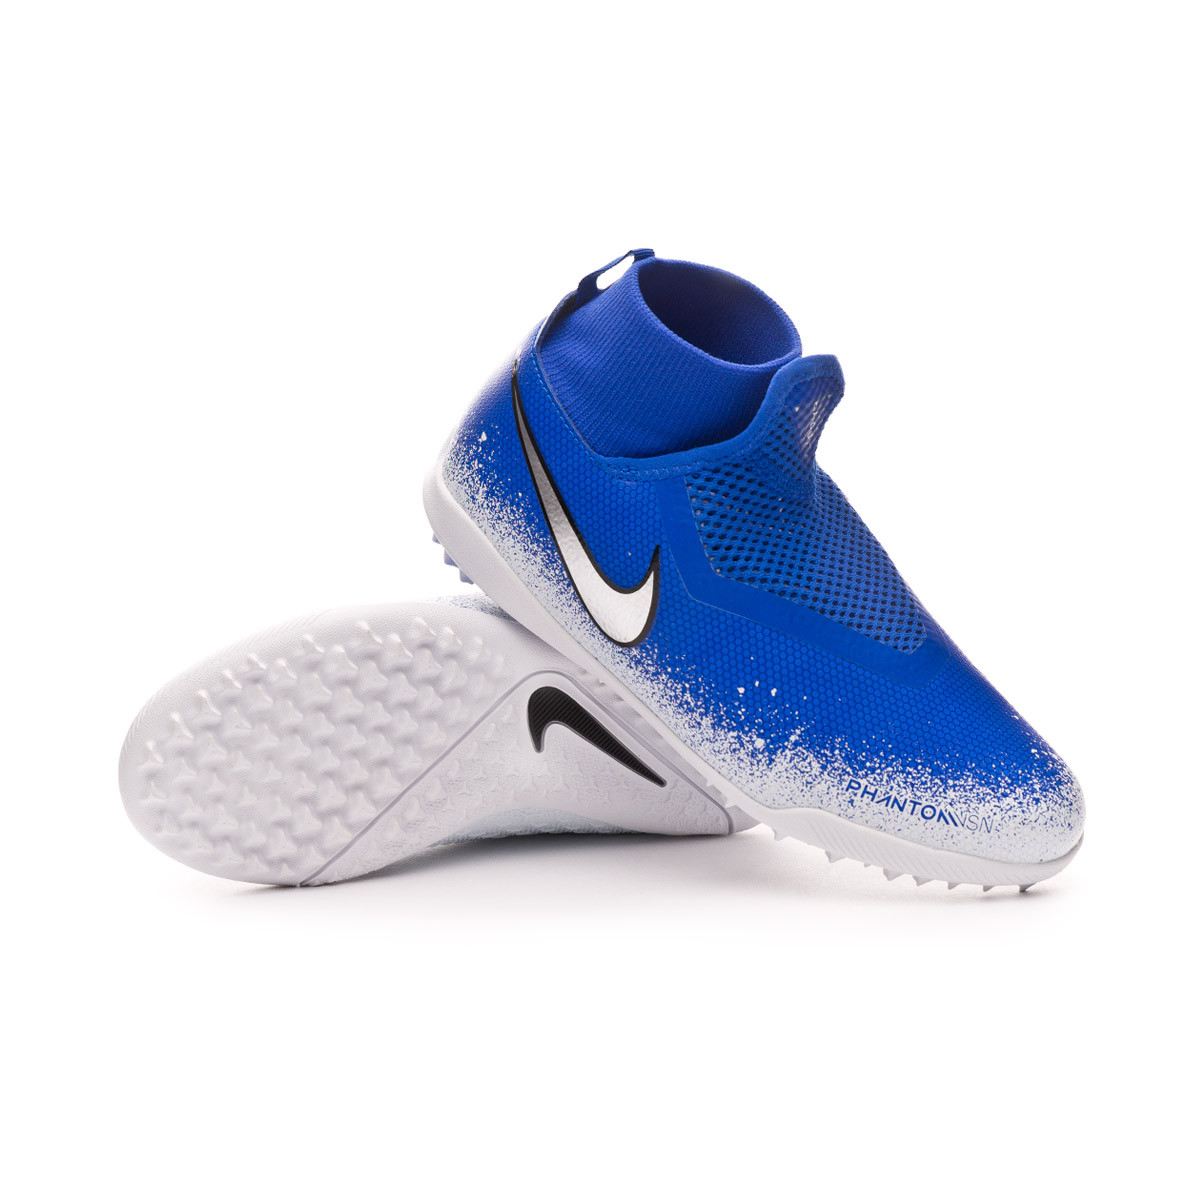 best service 586ac f7be1 Football Boot Nike Phantom Vision Academy DF Turf Niño Racer blue -Chrome-White-Black - Football store Fútbol Emotion